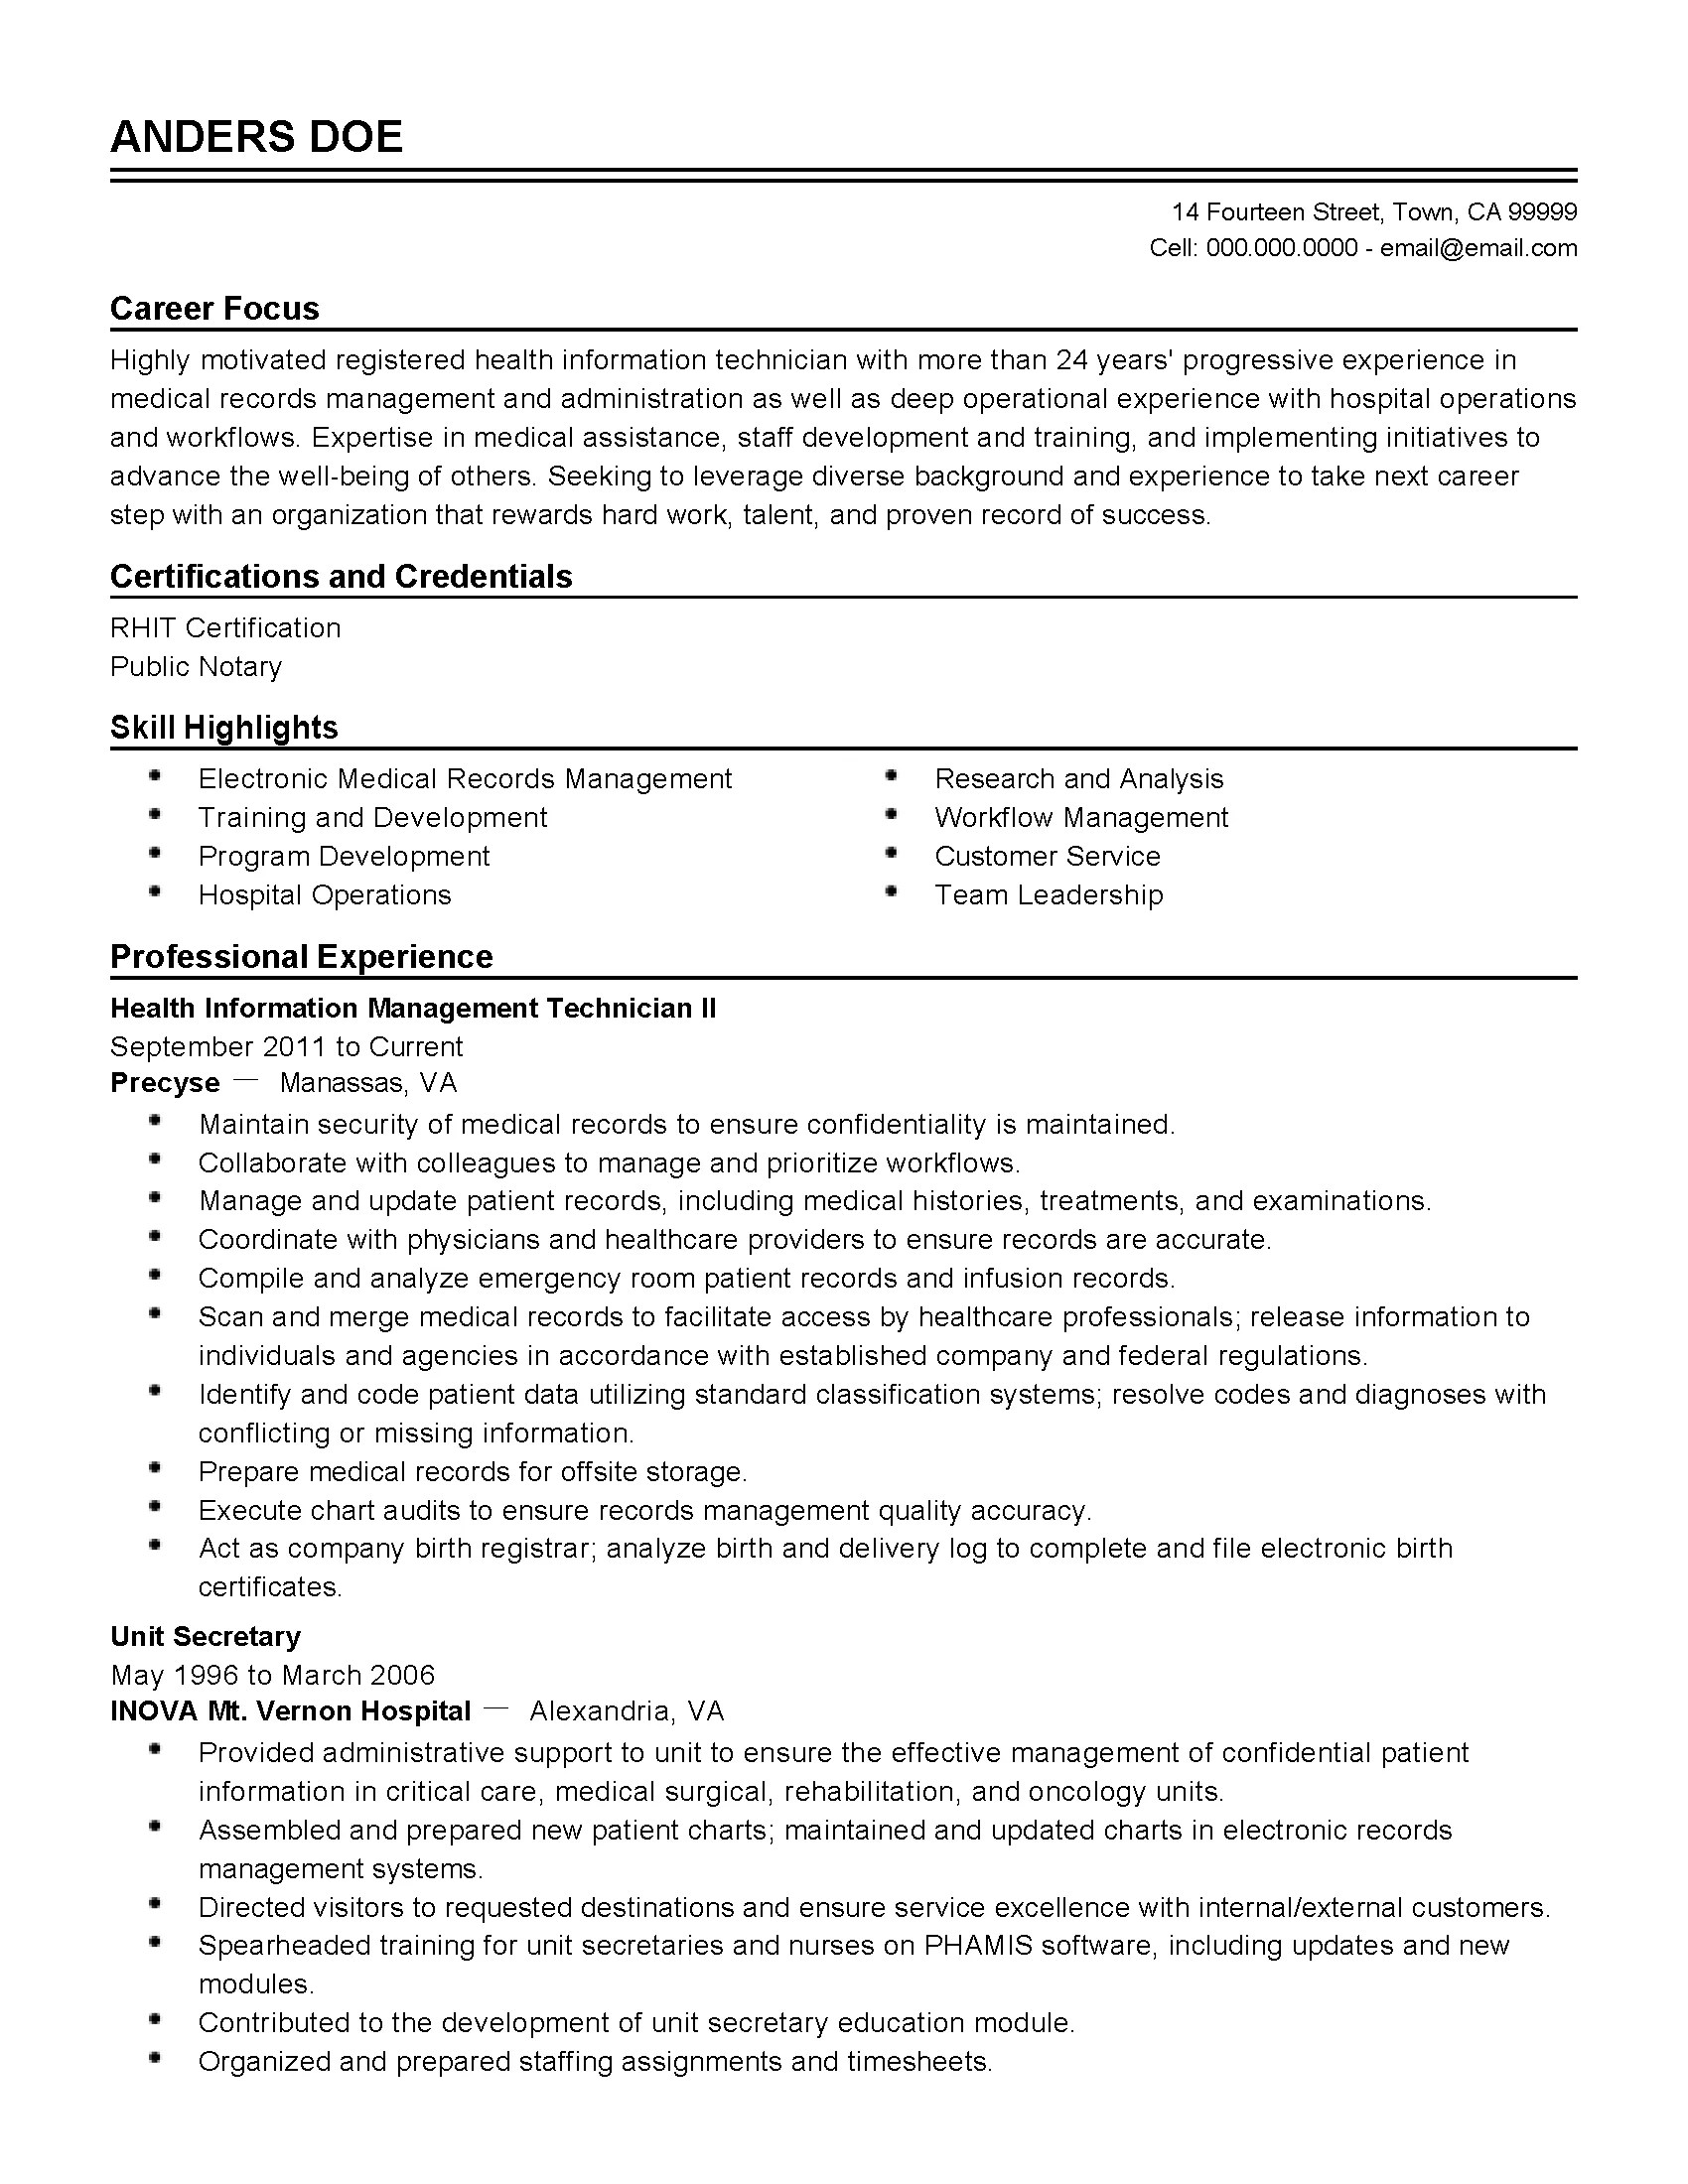 Director Of Information Technology Resume Sample Professional Health Information Technician Templates To